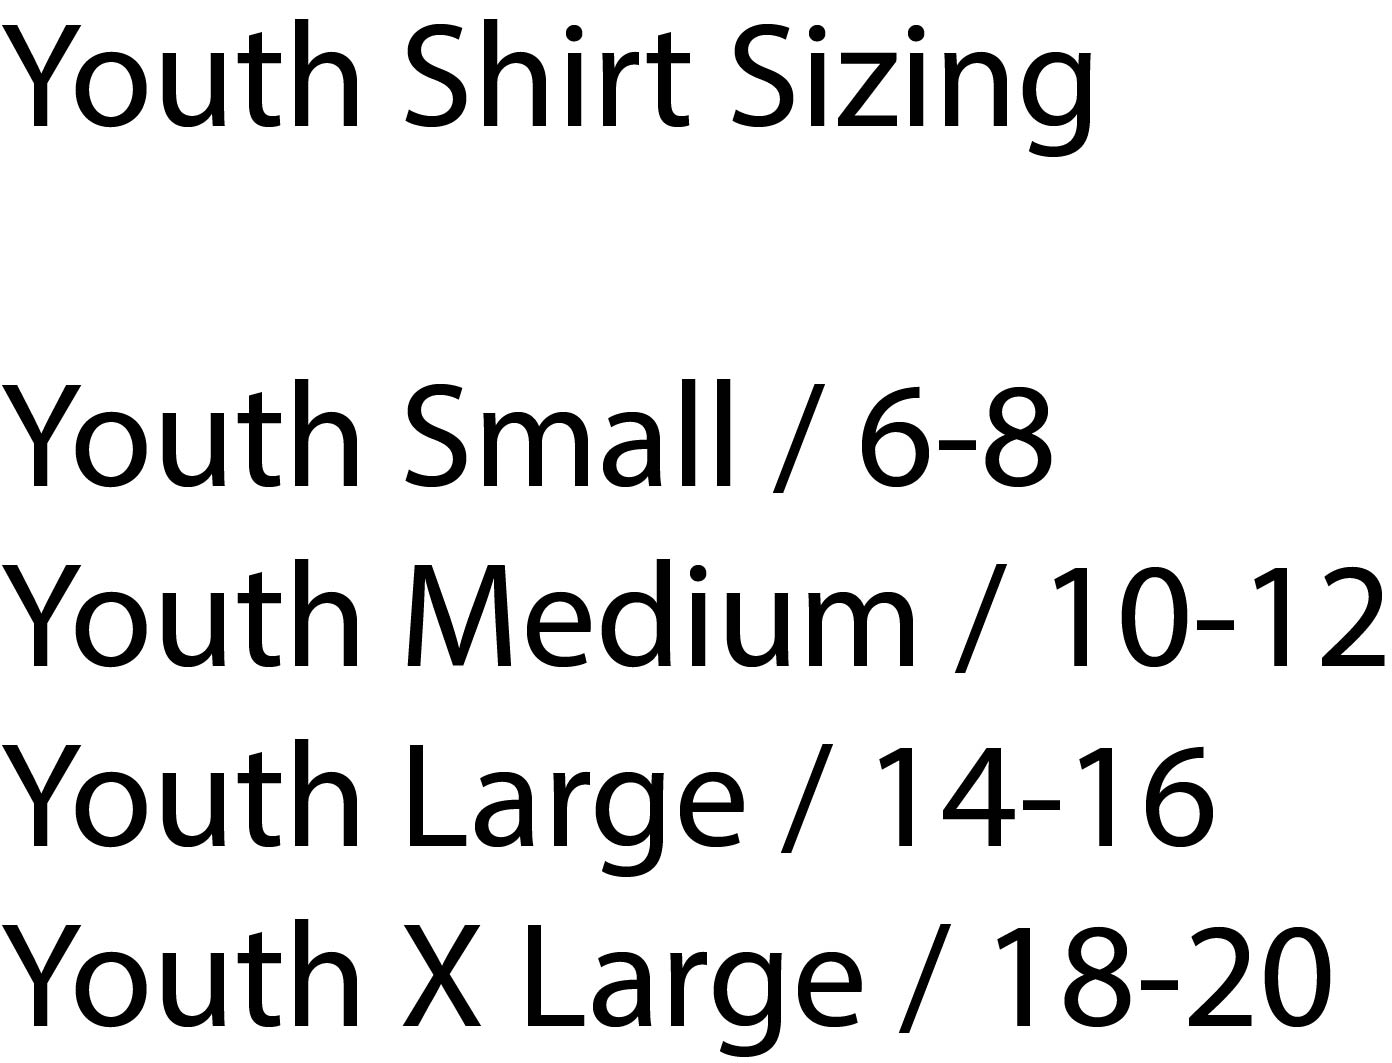 youth-shirt-sizing.jpg